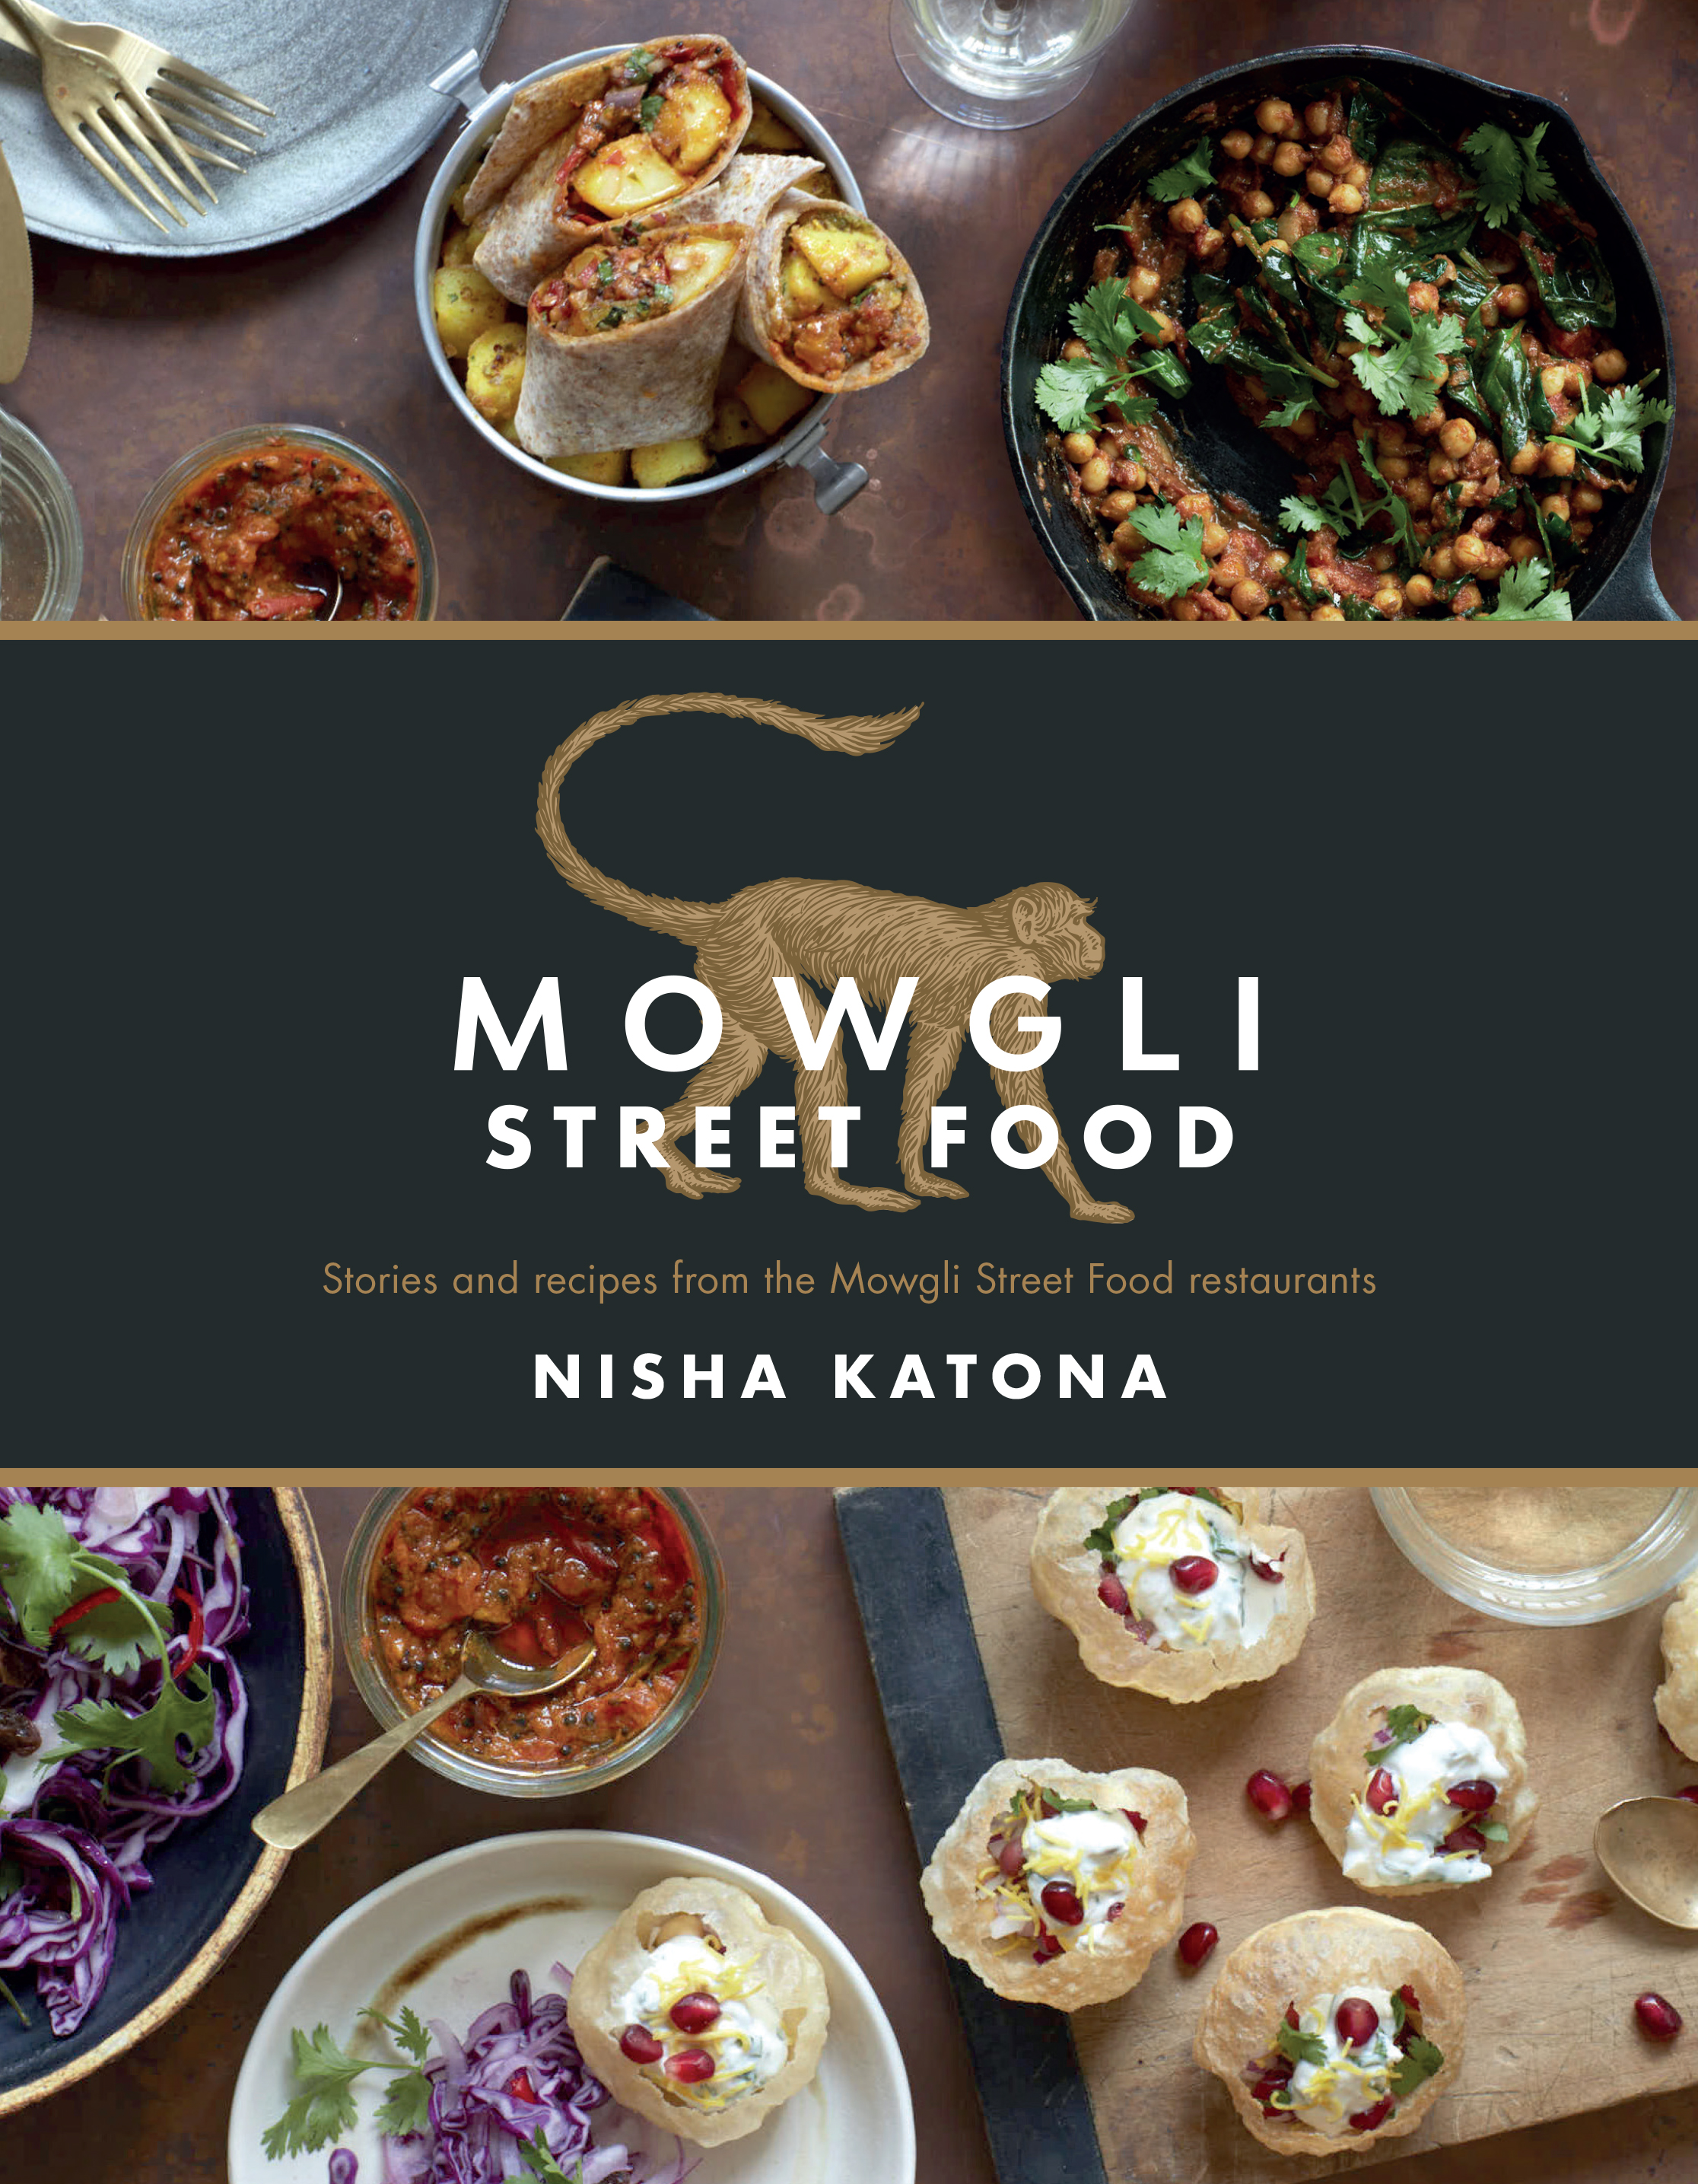 Mowgli street food cookbook review viva lifestyle magazine mowgli street food cookbook review forumfinder Image collections